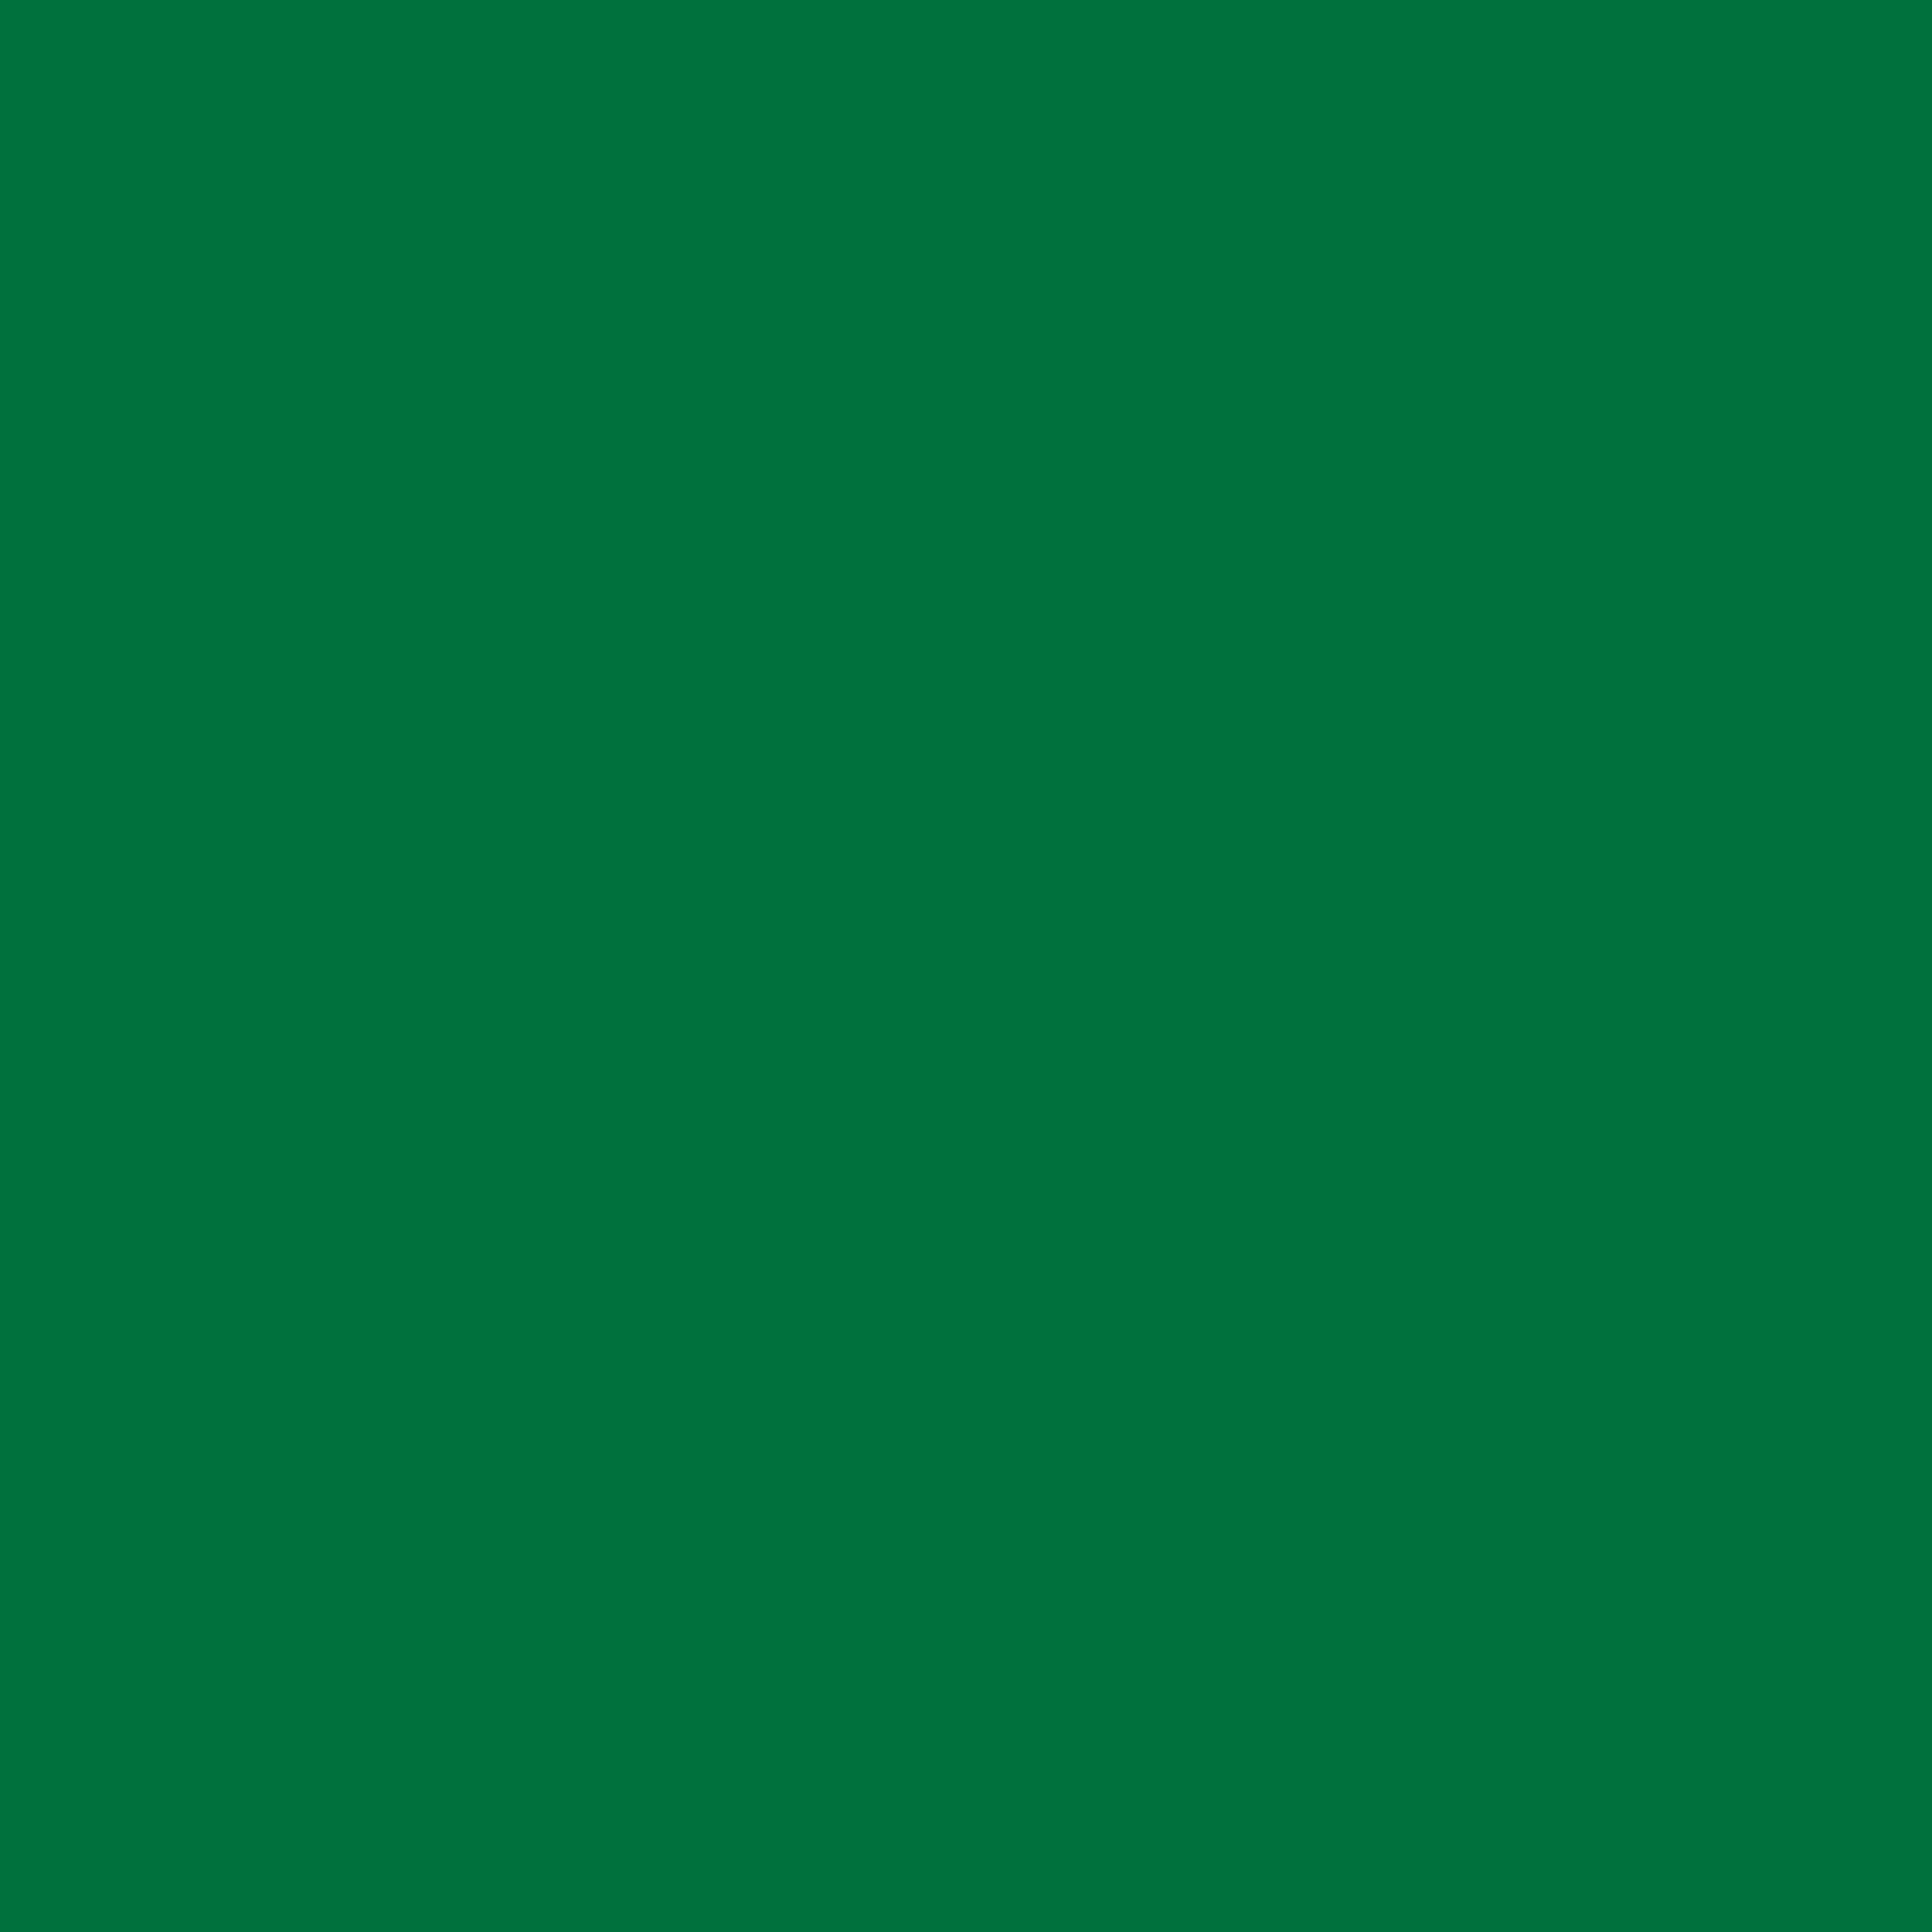 2048x2048 Dartmouth Green Solid Color Background